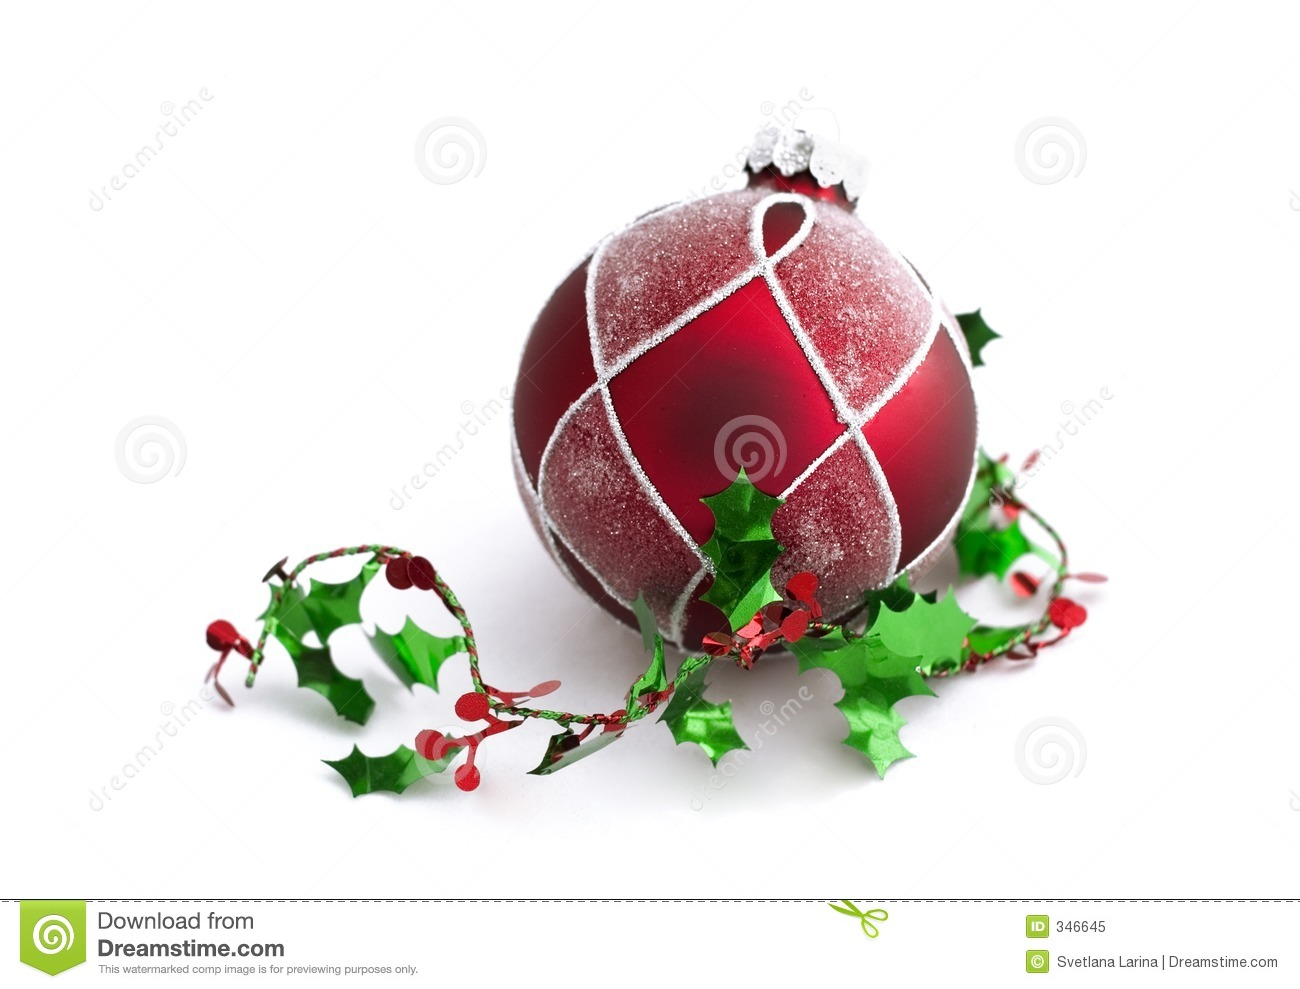 Christmas Decorations With Free Space Stock Image - Image of ...